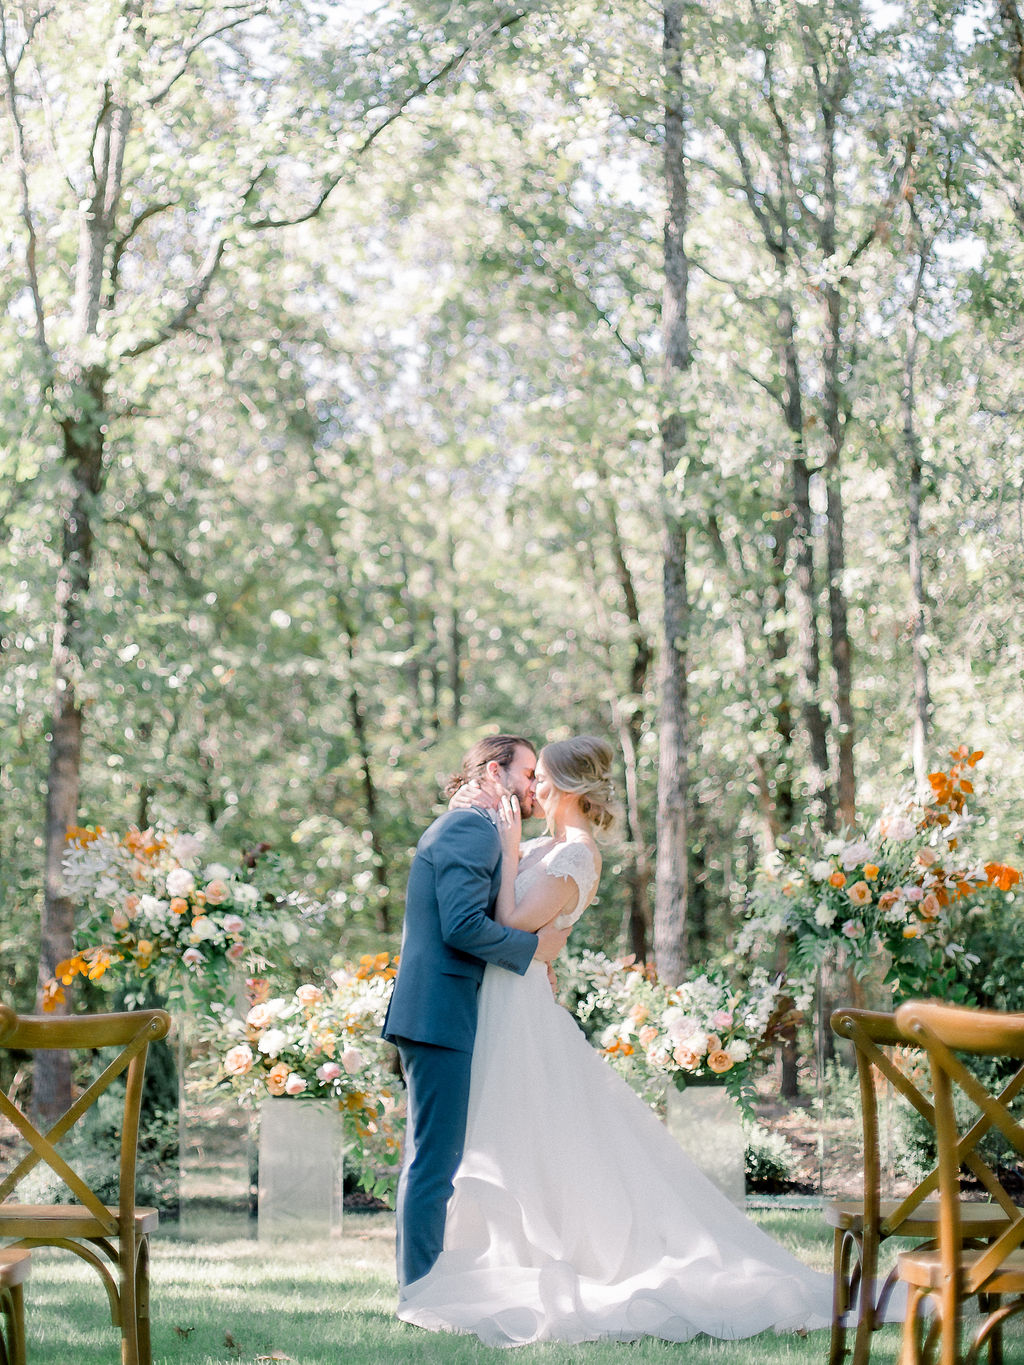 Ethereal Wedding Inspiration at The White Sparrow